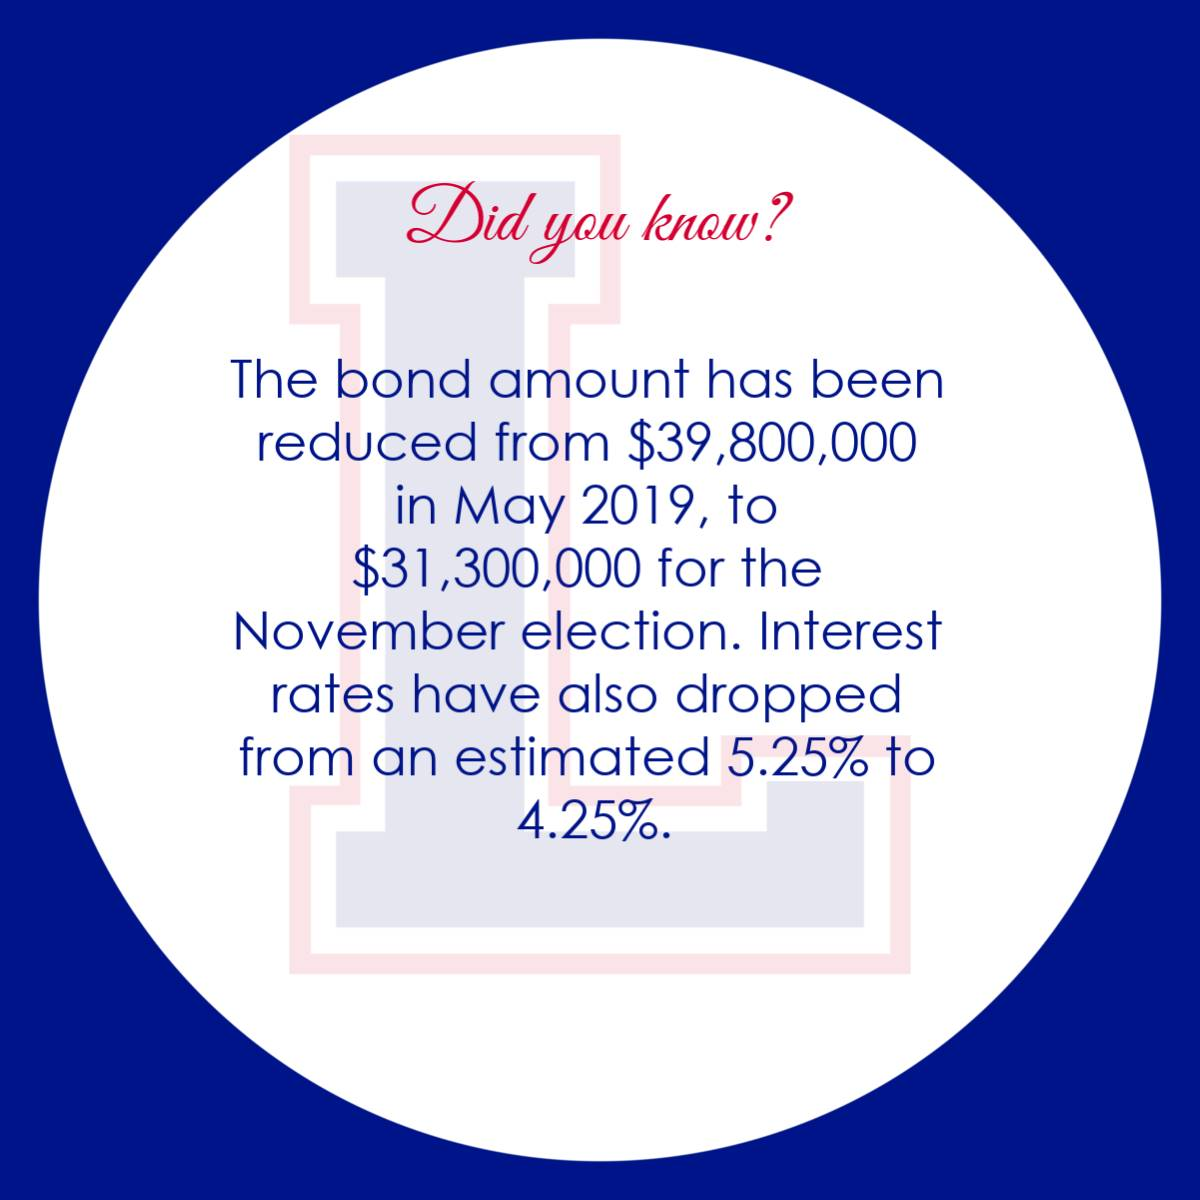 The bond amount has been reduced from $39,800,000 in May 2019, to $31,300,000 for the November elect